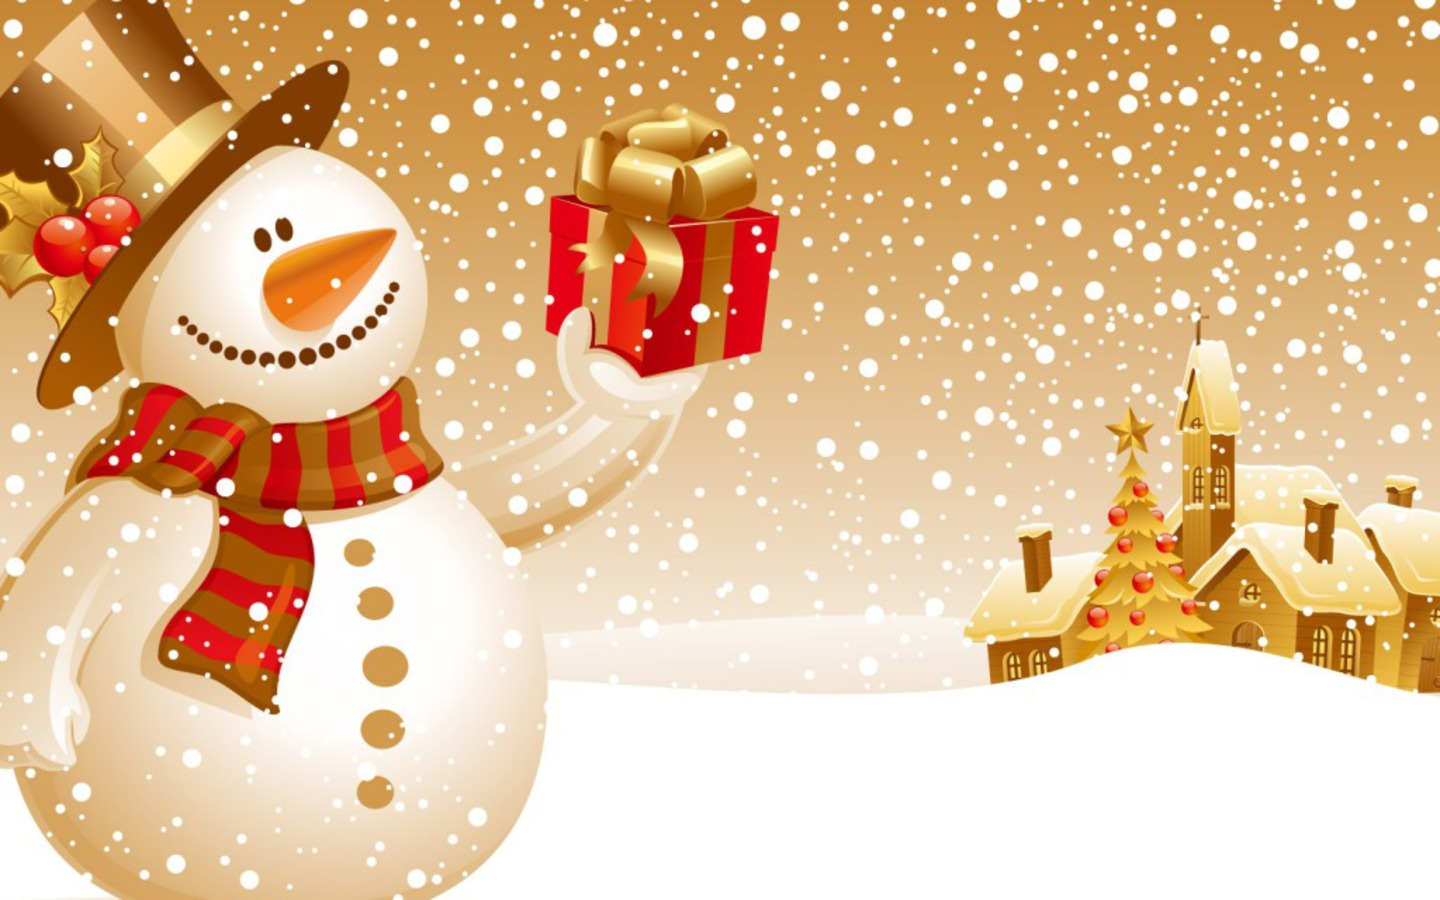 Collection of Free Xmas Screensavers And Wallpaper on HDWallpapers